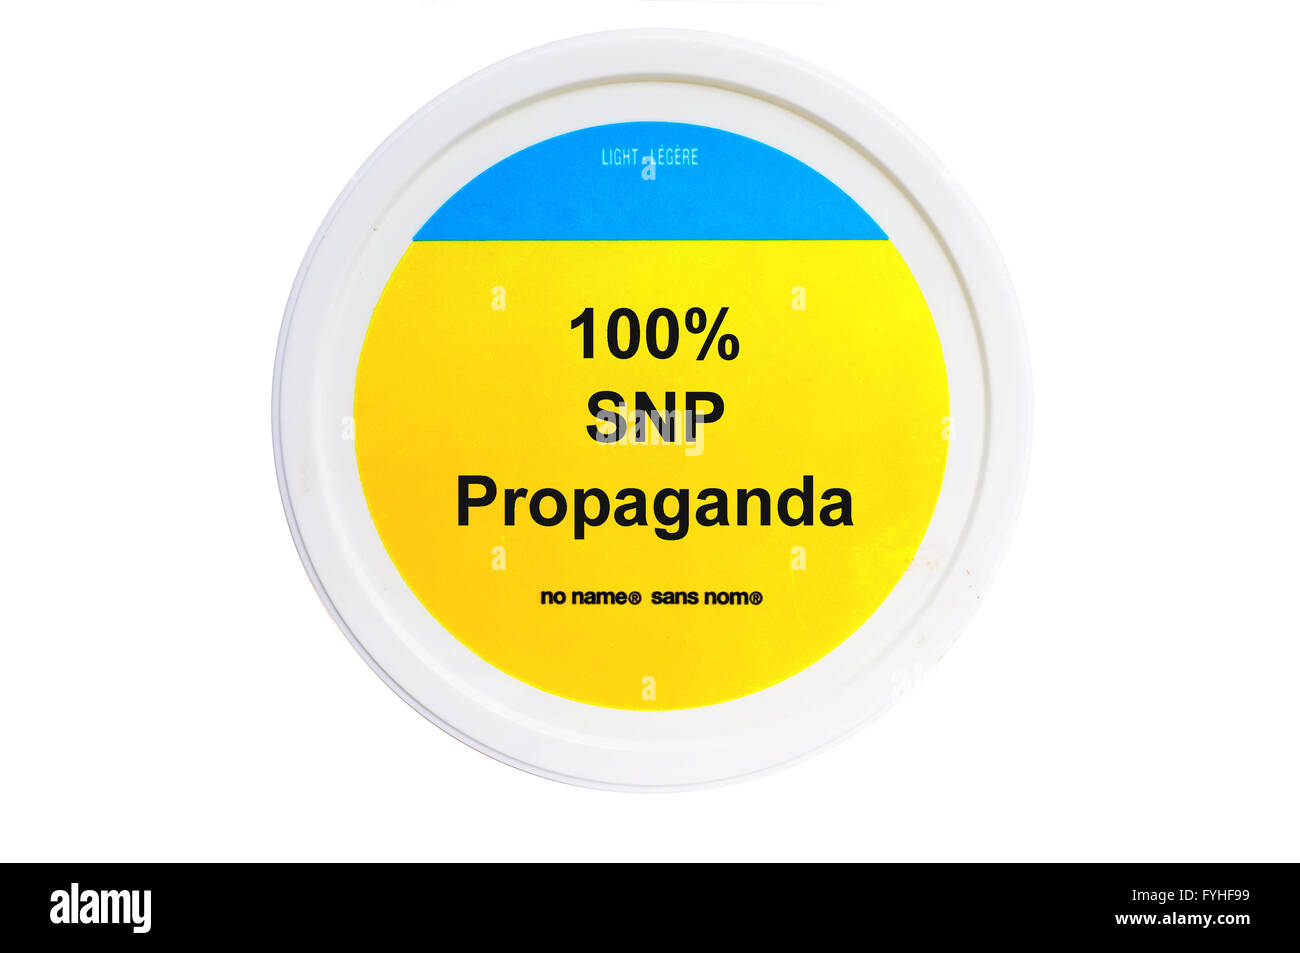 A tub with 100% SNP Propaganda written on the label photographed against a white background. - Stock Image